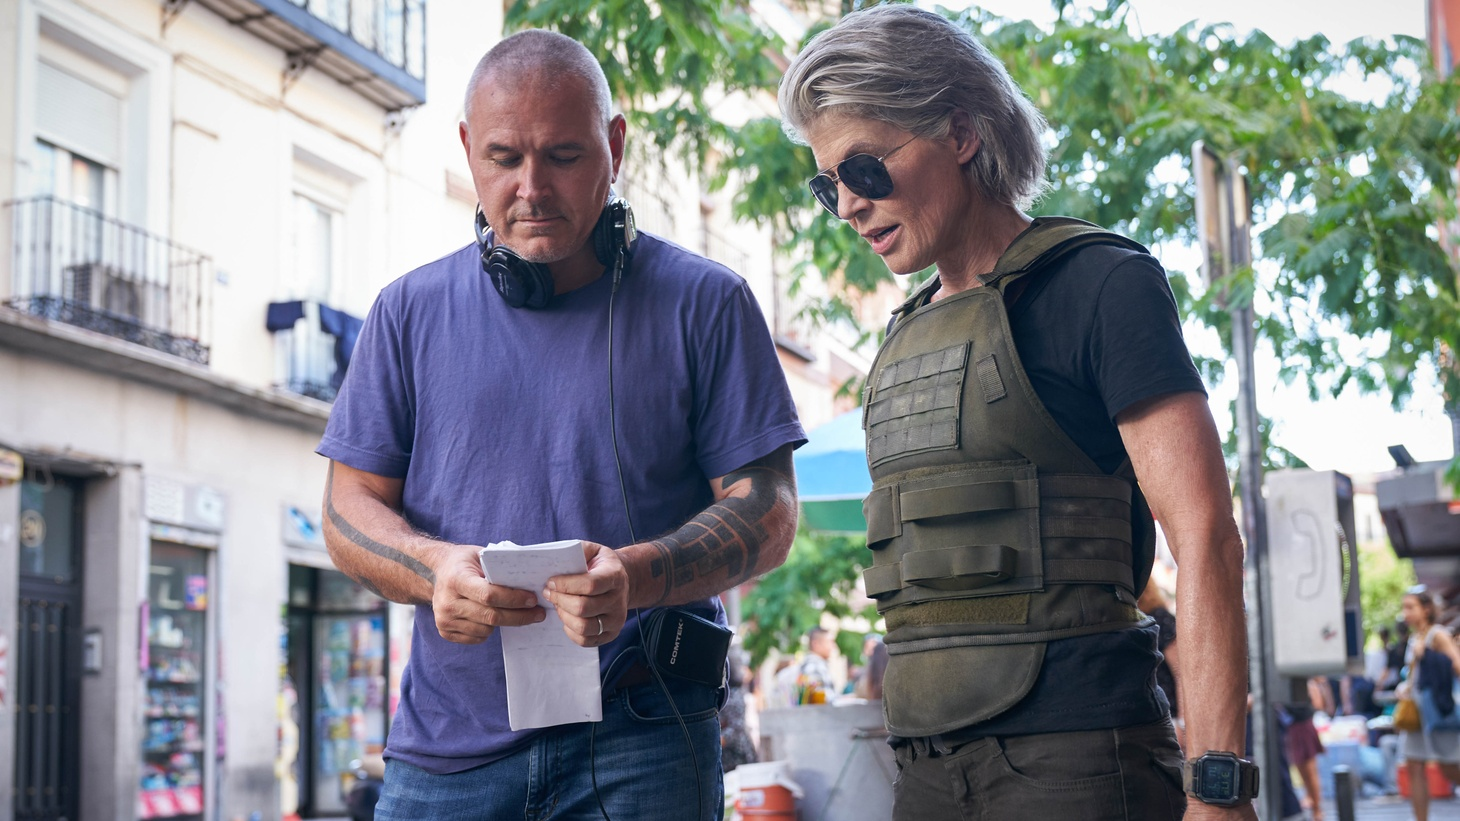 Director Tim Miller and Linda Hamilton and on the set of 'Terminator: Dark Fate.'